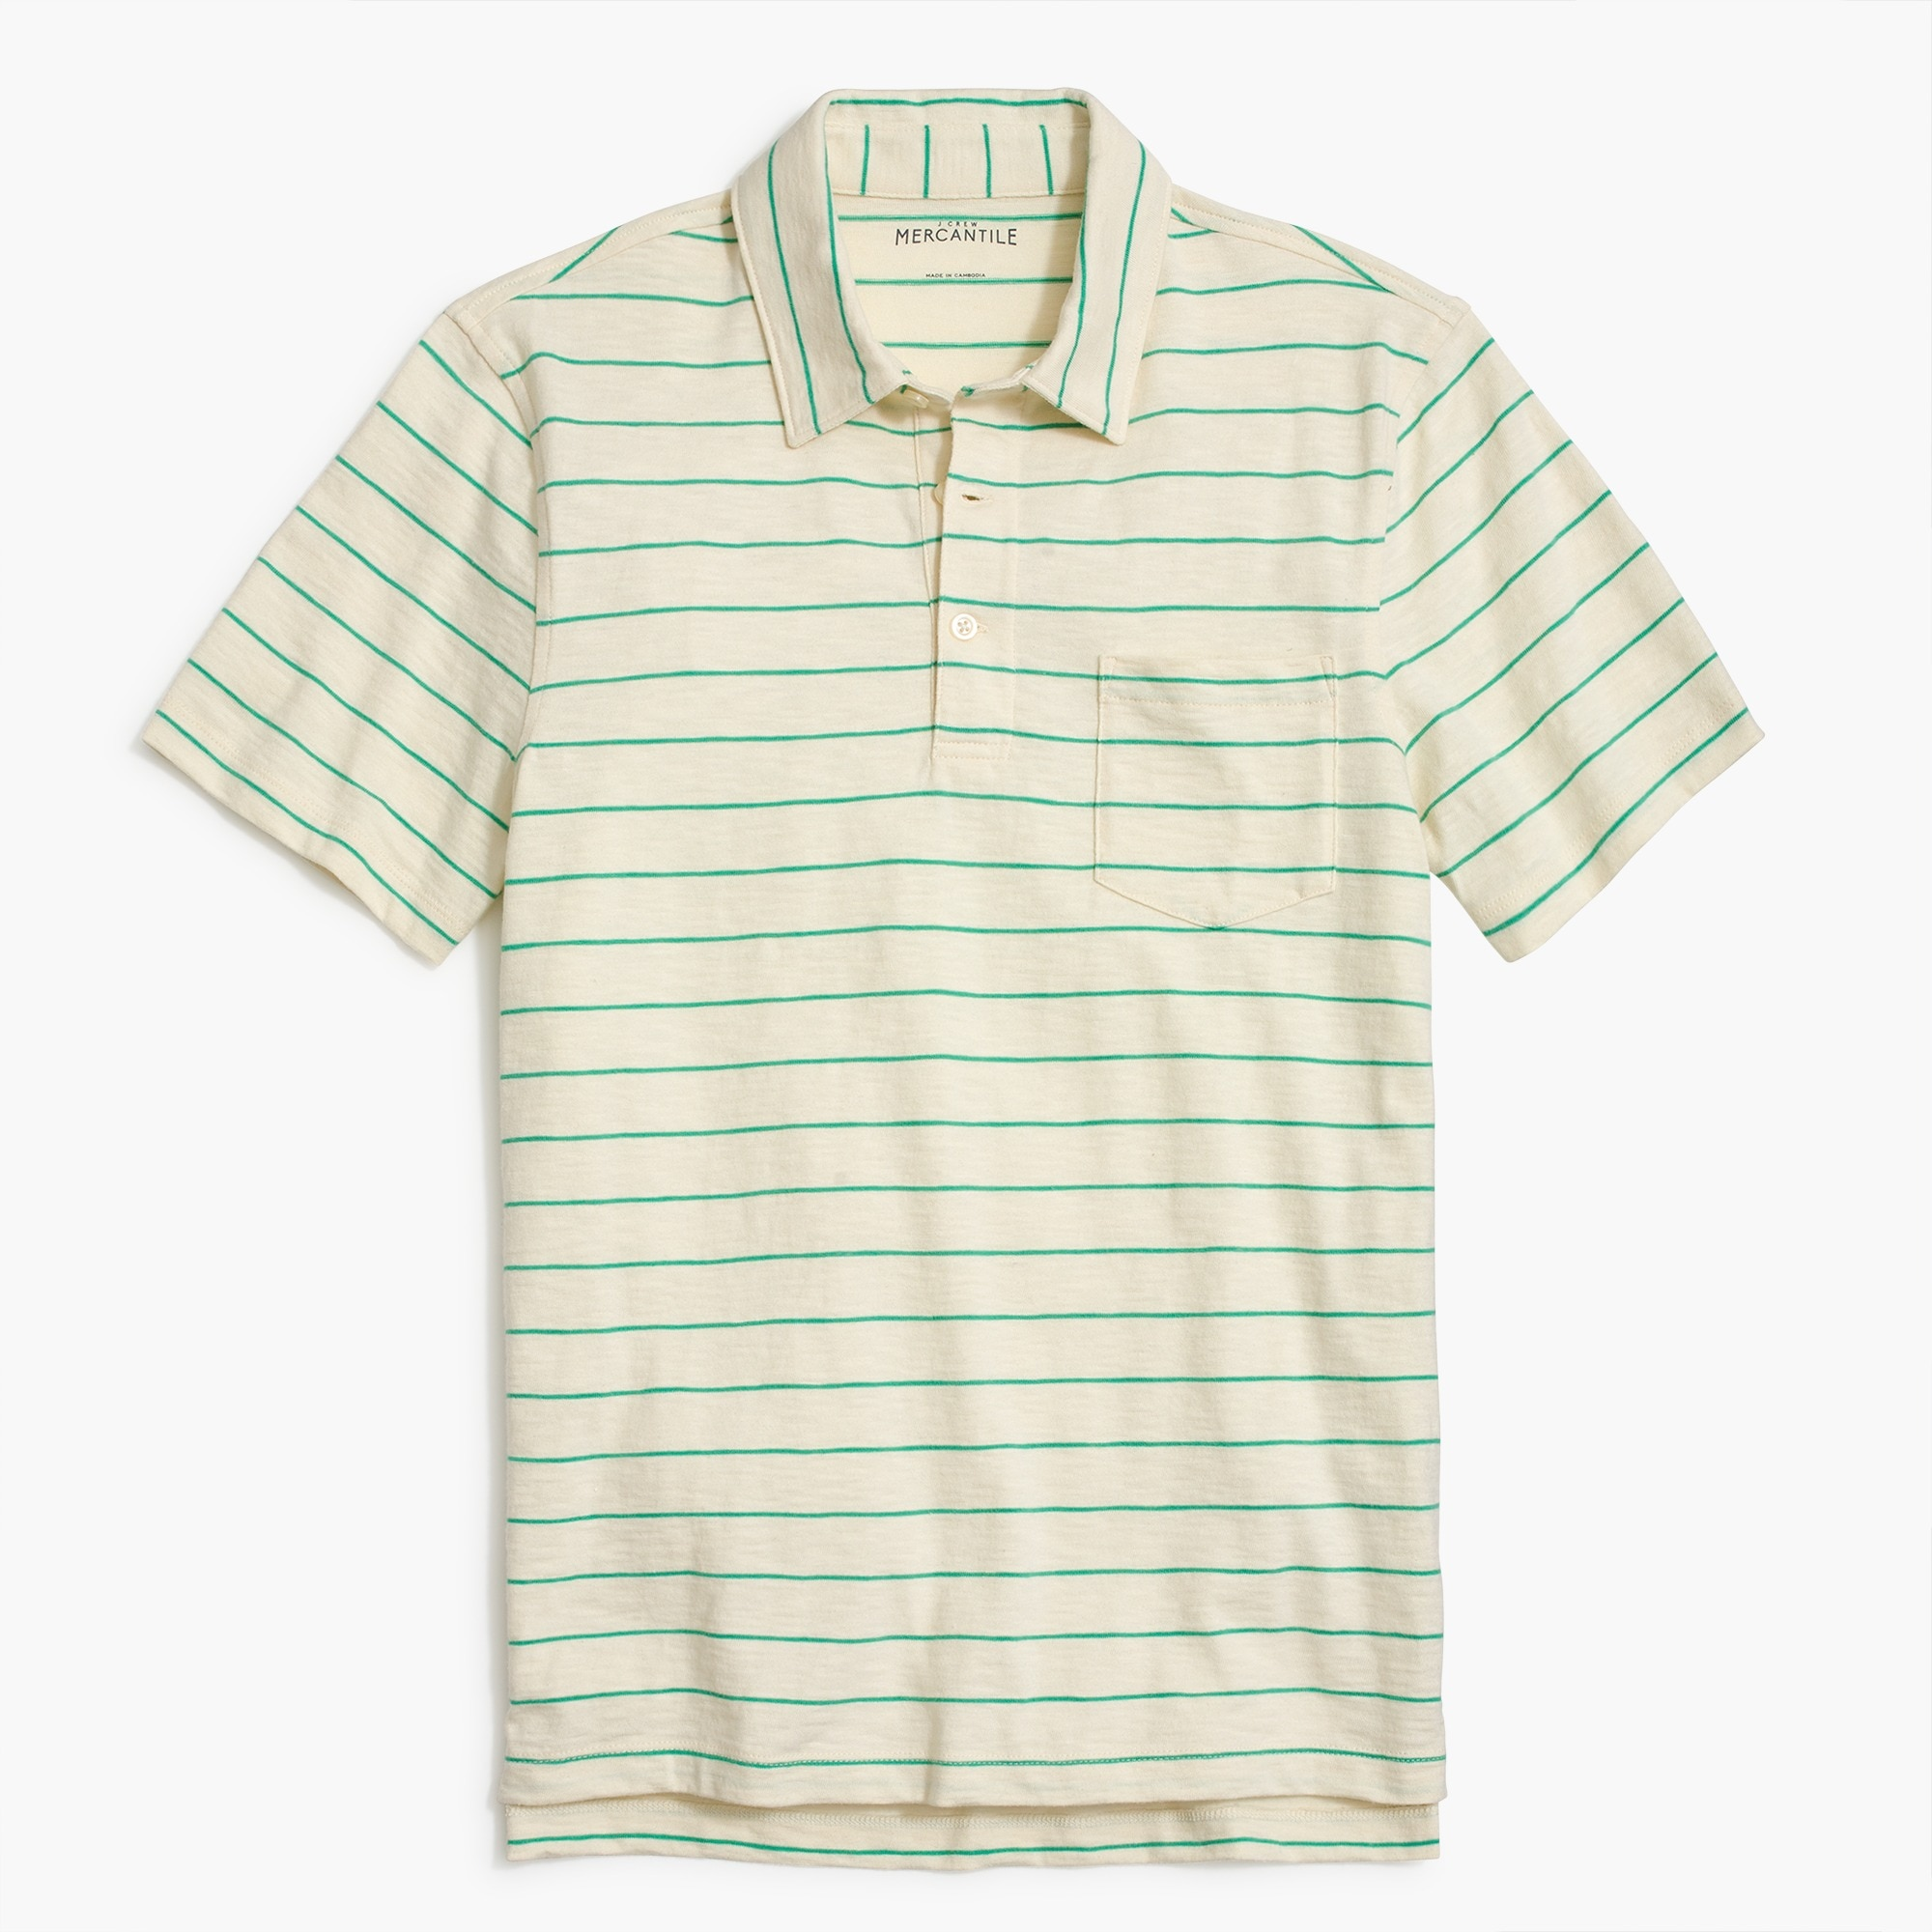 Image 2 for Striped short-sleeve polo shirt in slub cotton